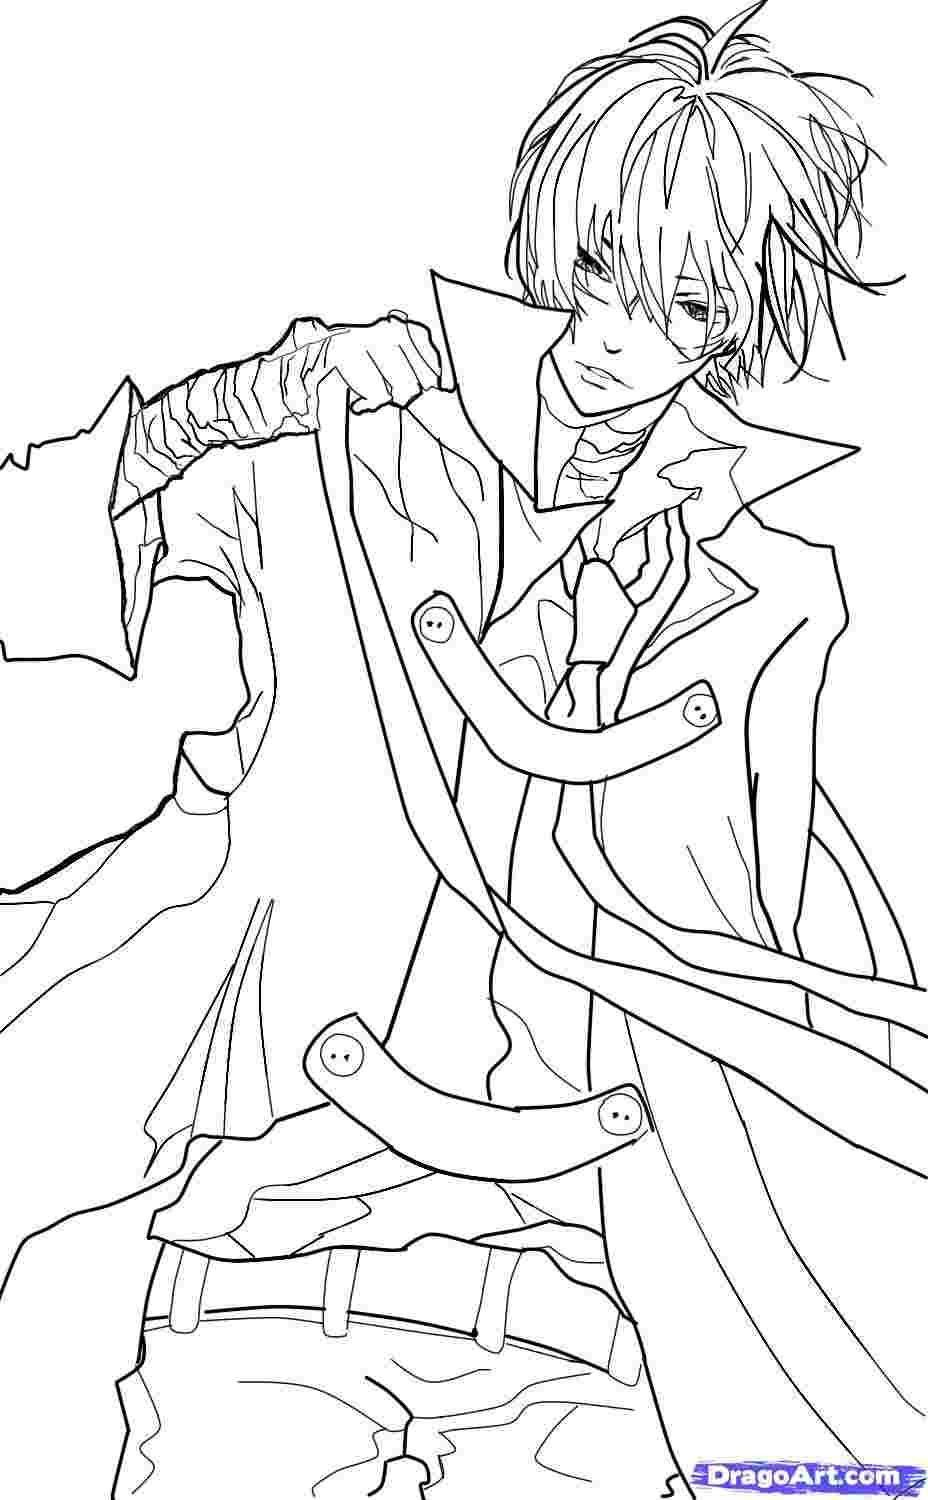 Anime Coloring Pages For Boys Coloring Pages For Boys Chibi Coloring Pages Boy Coloring